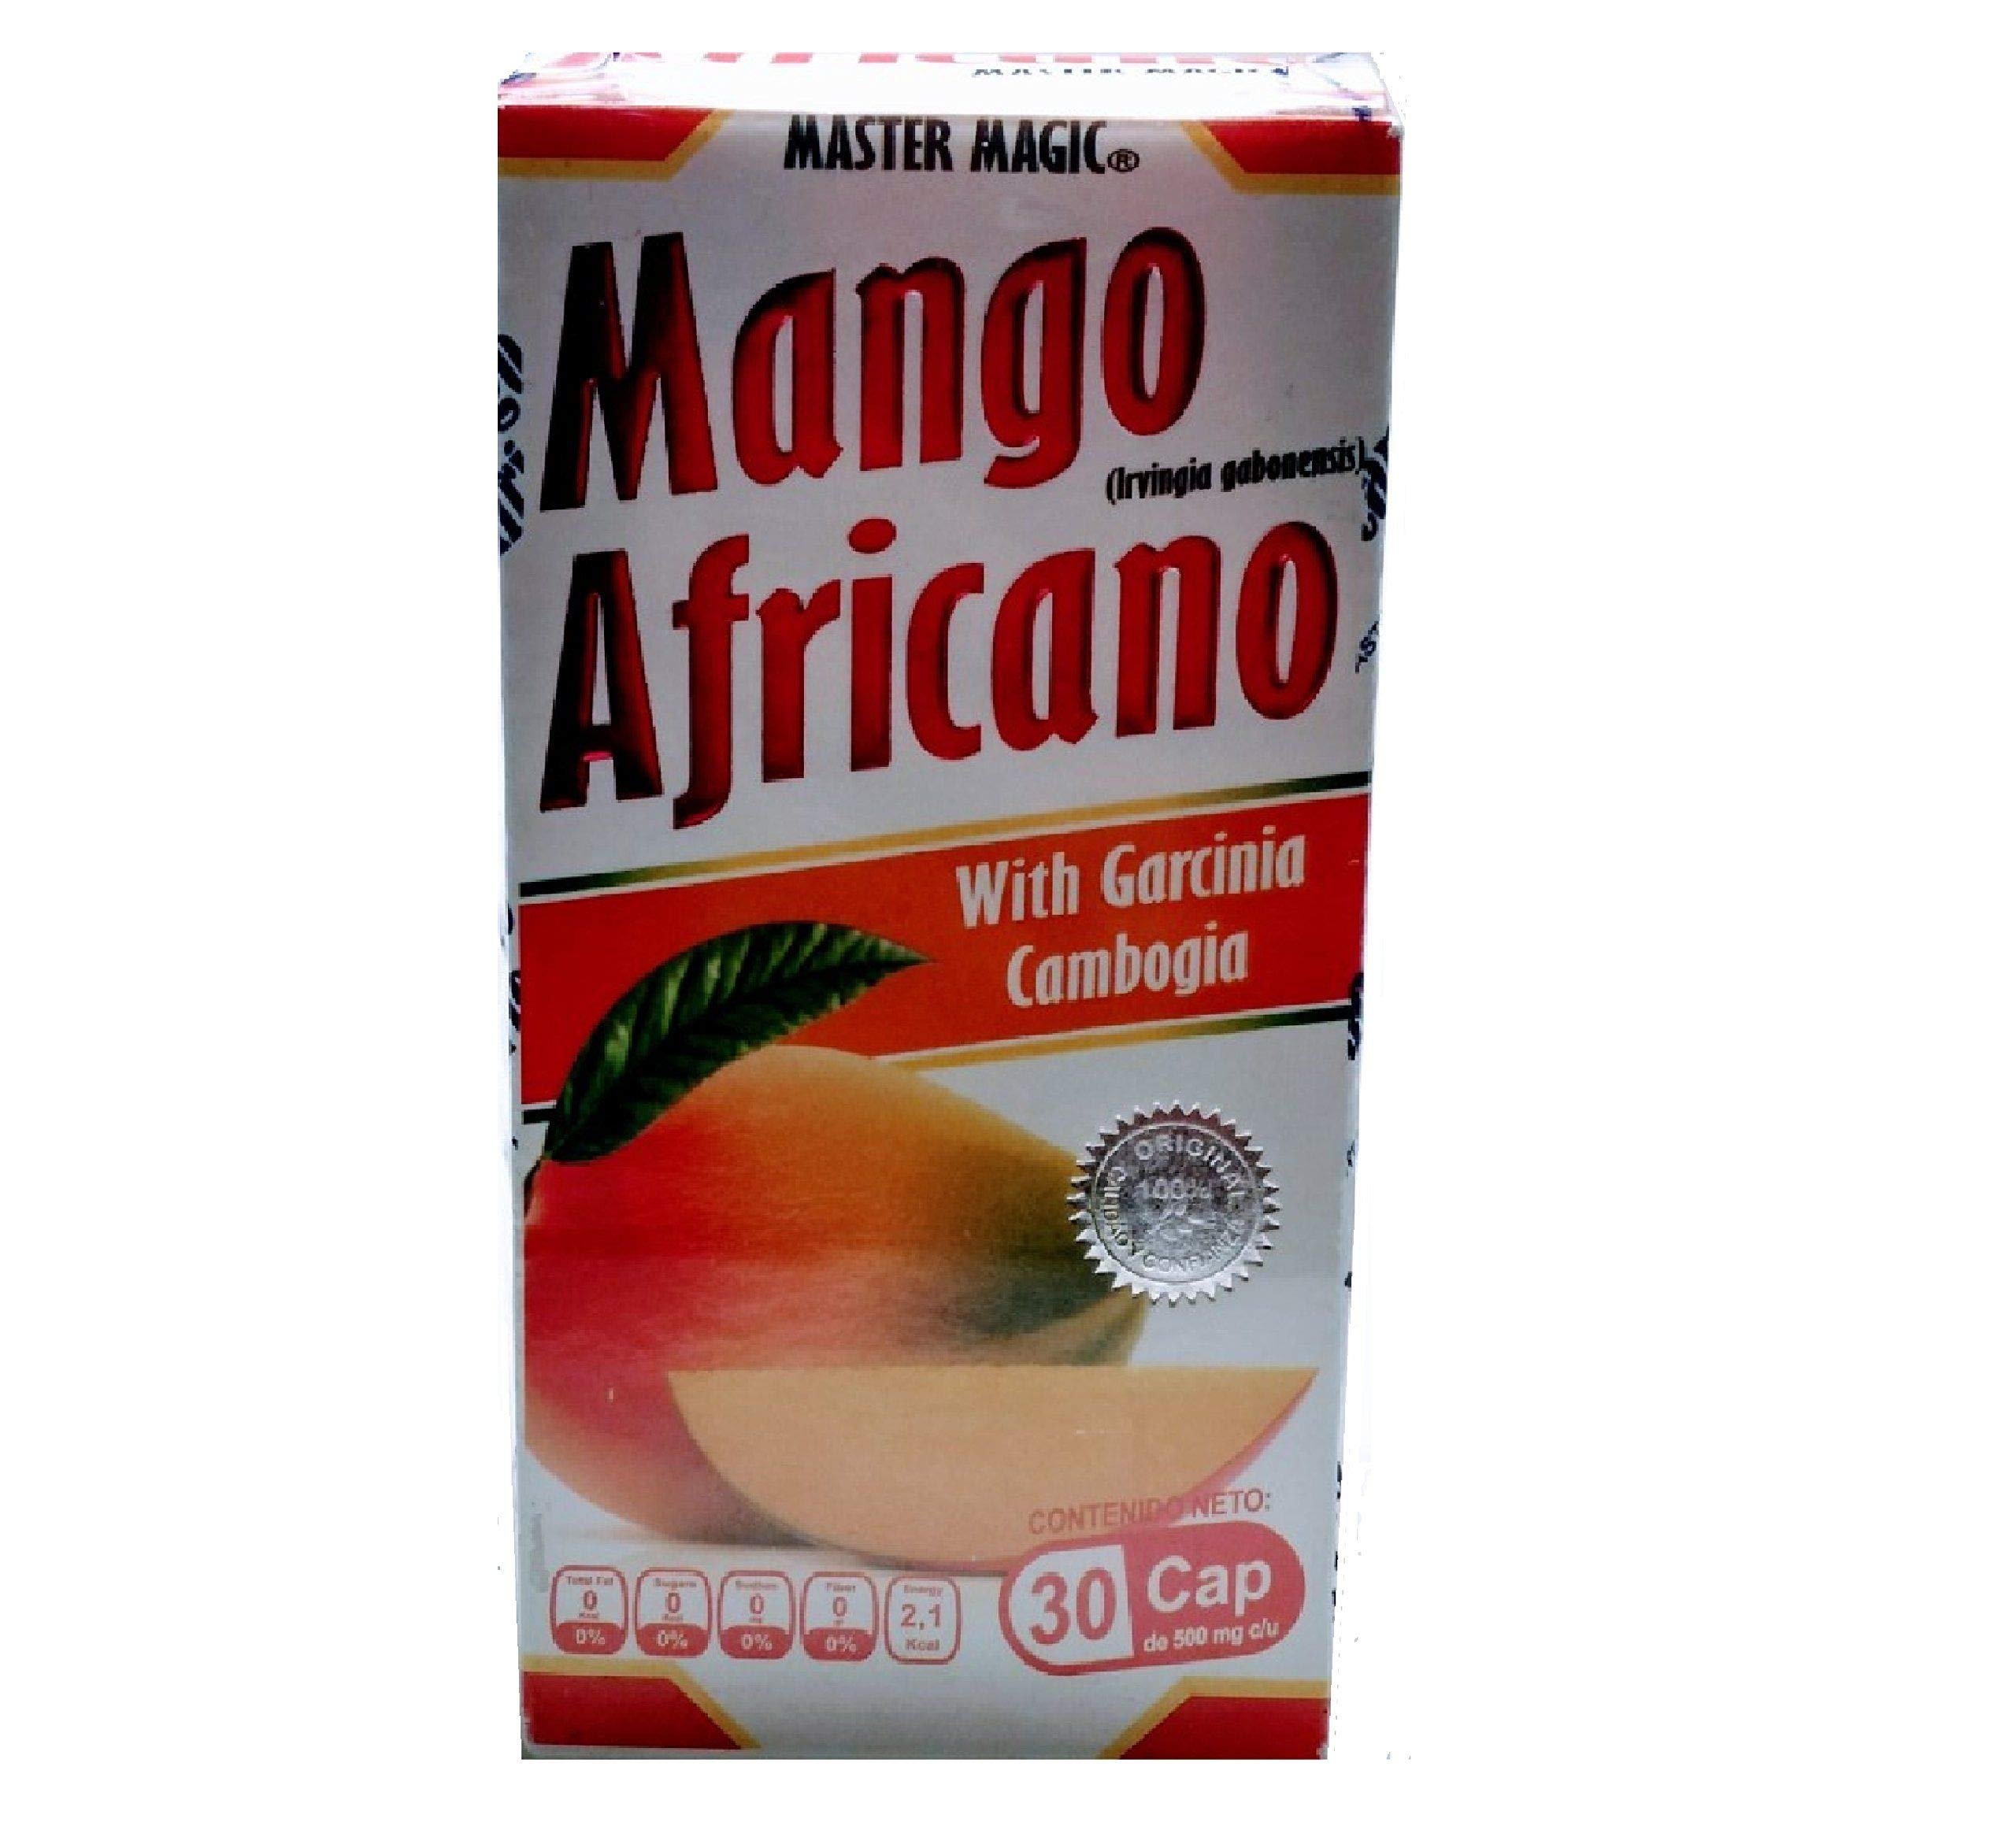 Mango Africano Master Magic, African Mango Reinforced 30 Capsules 500 milligrams, Natural Weight Loss